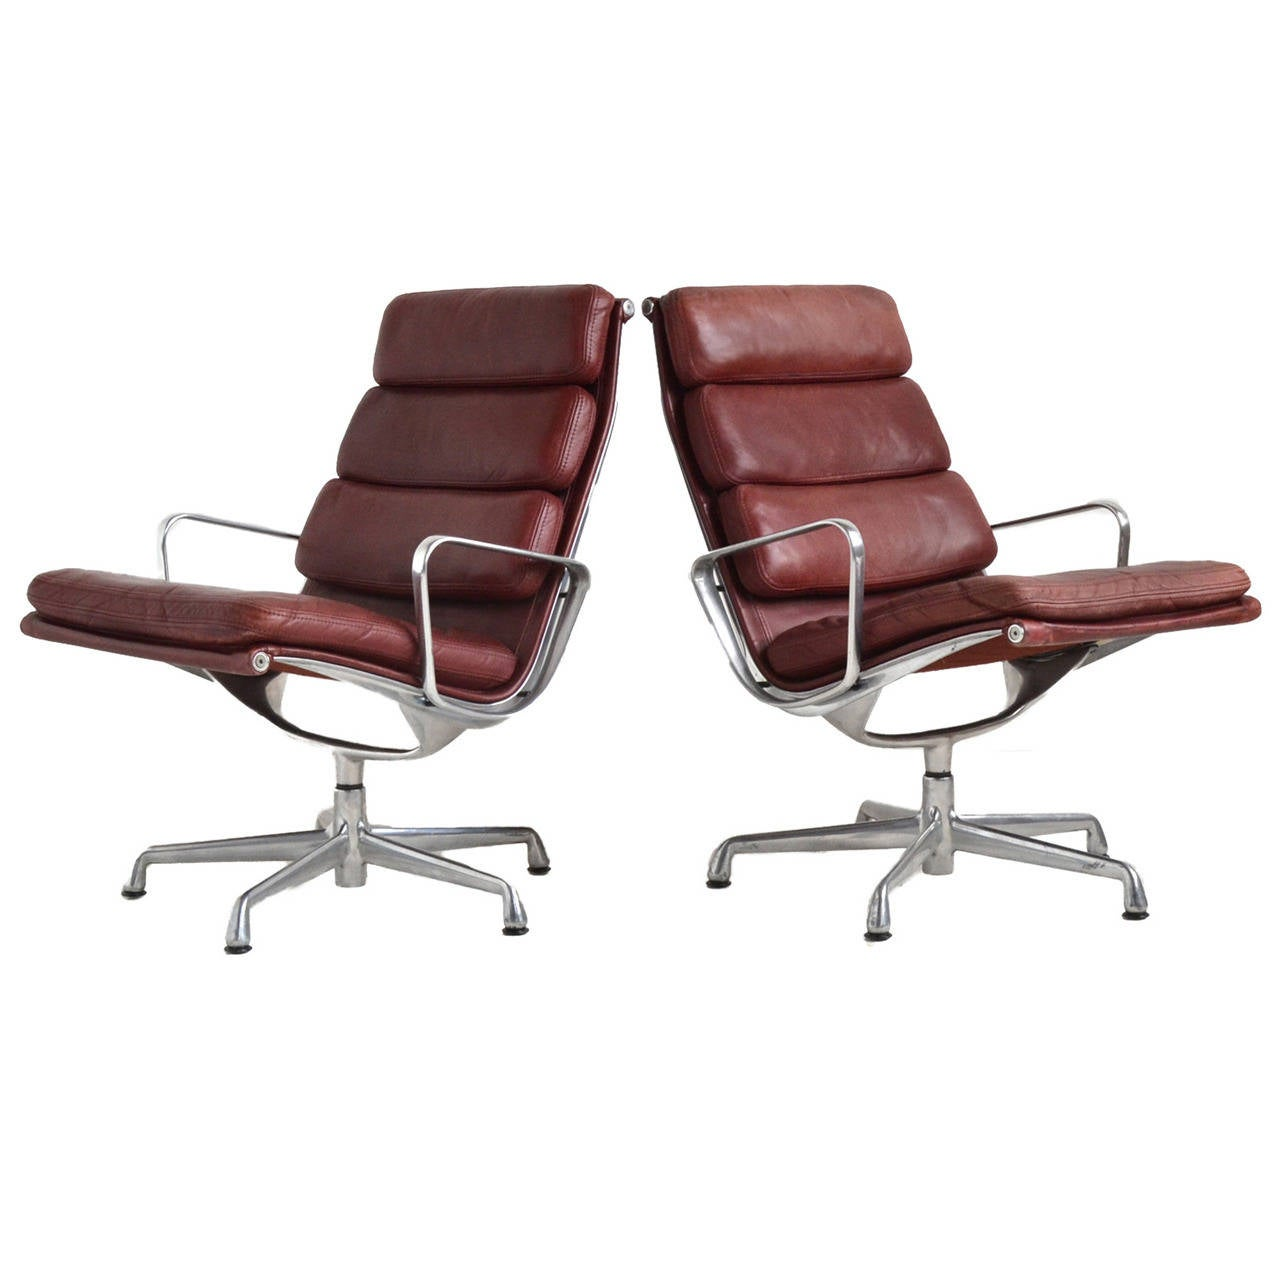 eames soft pad lounge chairs by herman miller for sale at 1stdibs. Black Bedroom Furniture Sets. Home Design Ideas